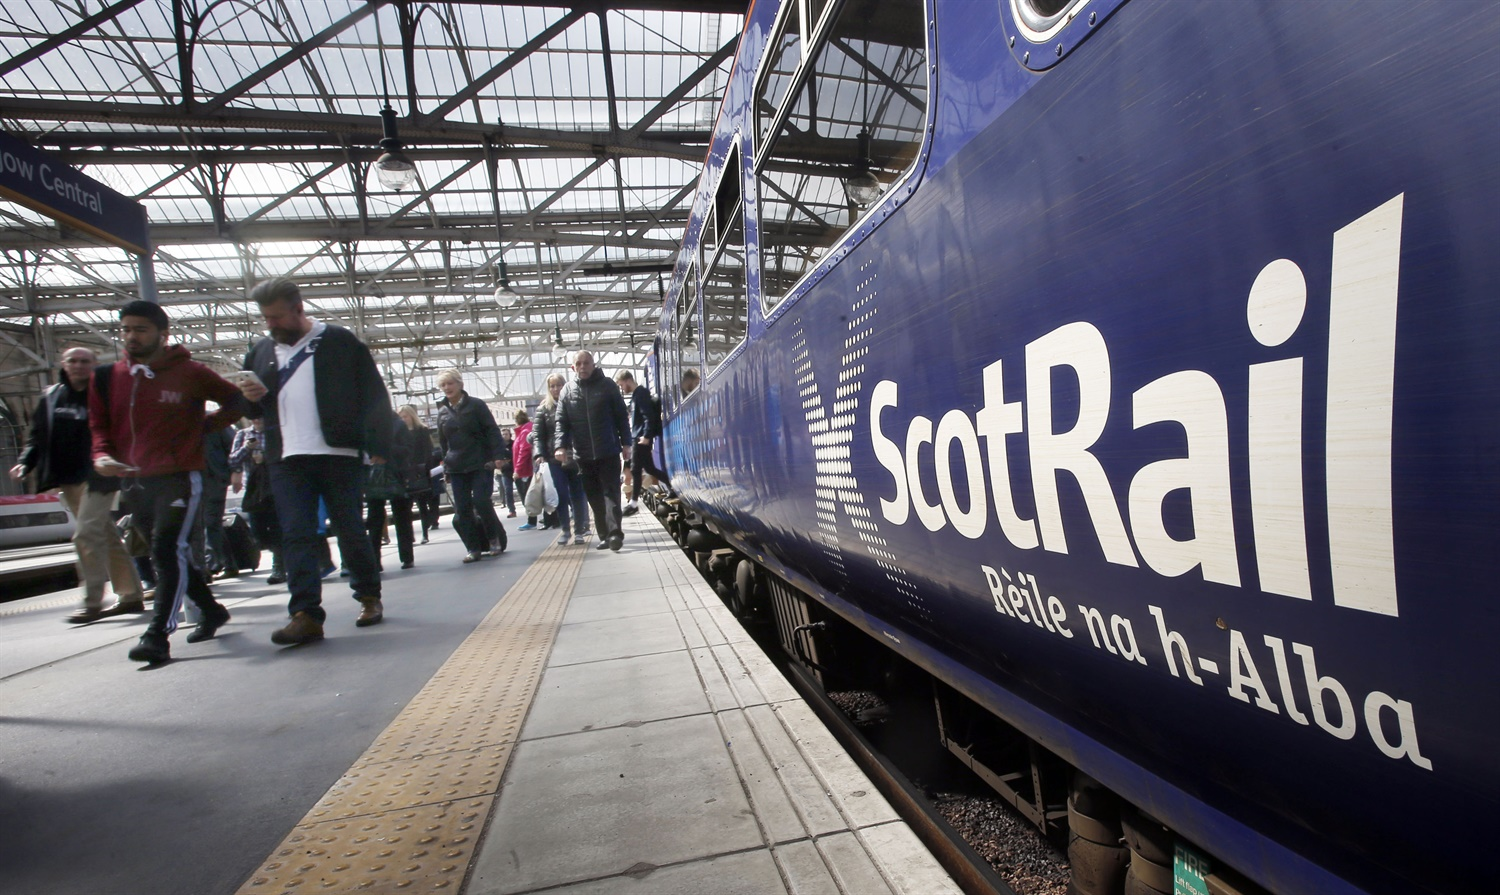 ScotRail cancels services because of Storm Barbara